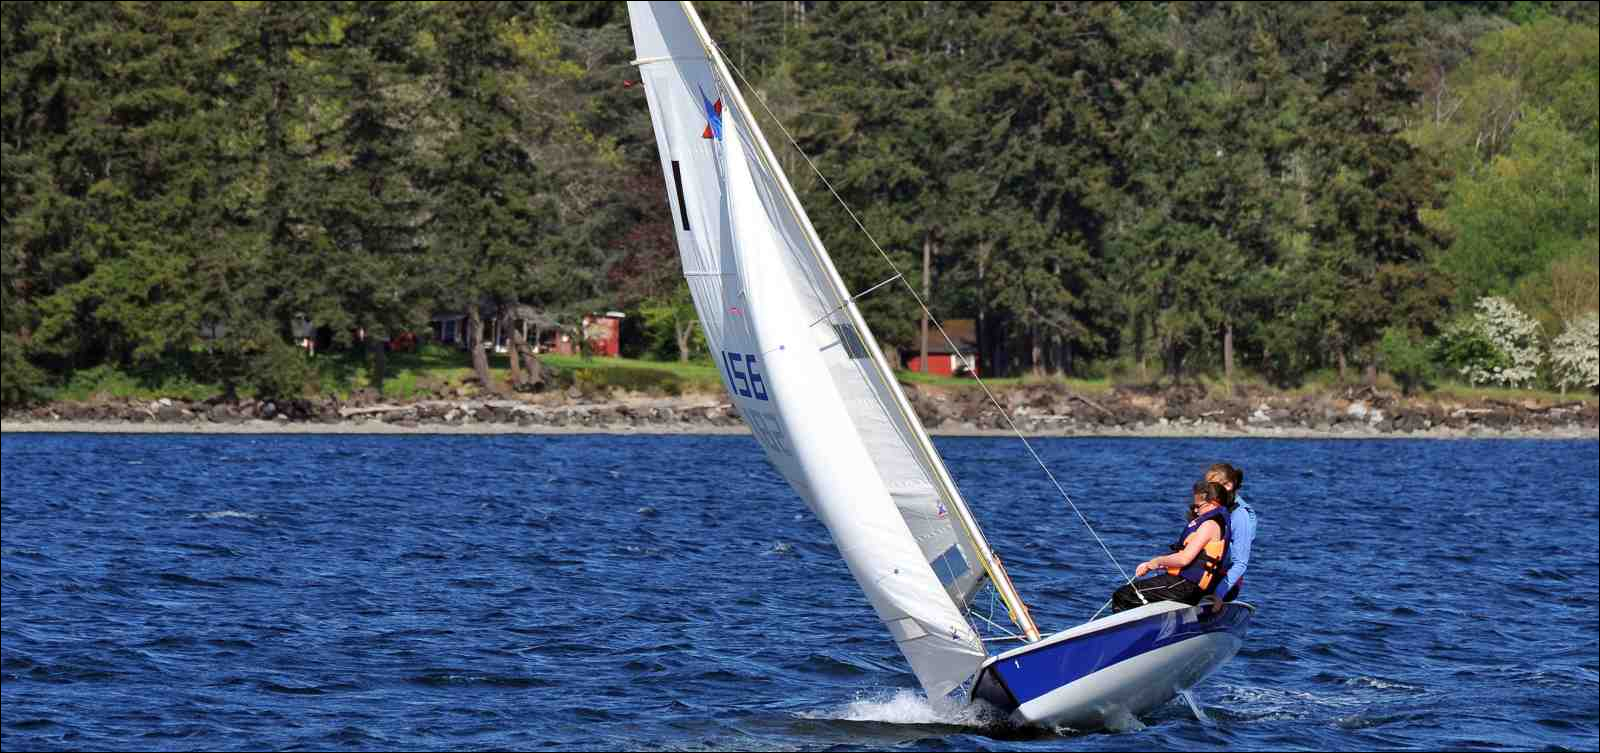 A couple learning to sail in Dye's Inlet, Silverdale, Washington